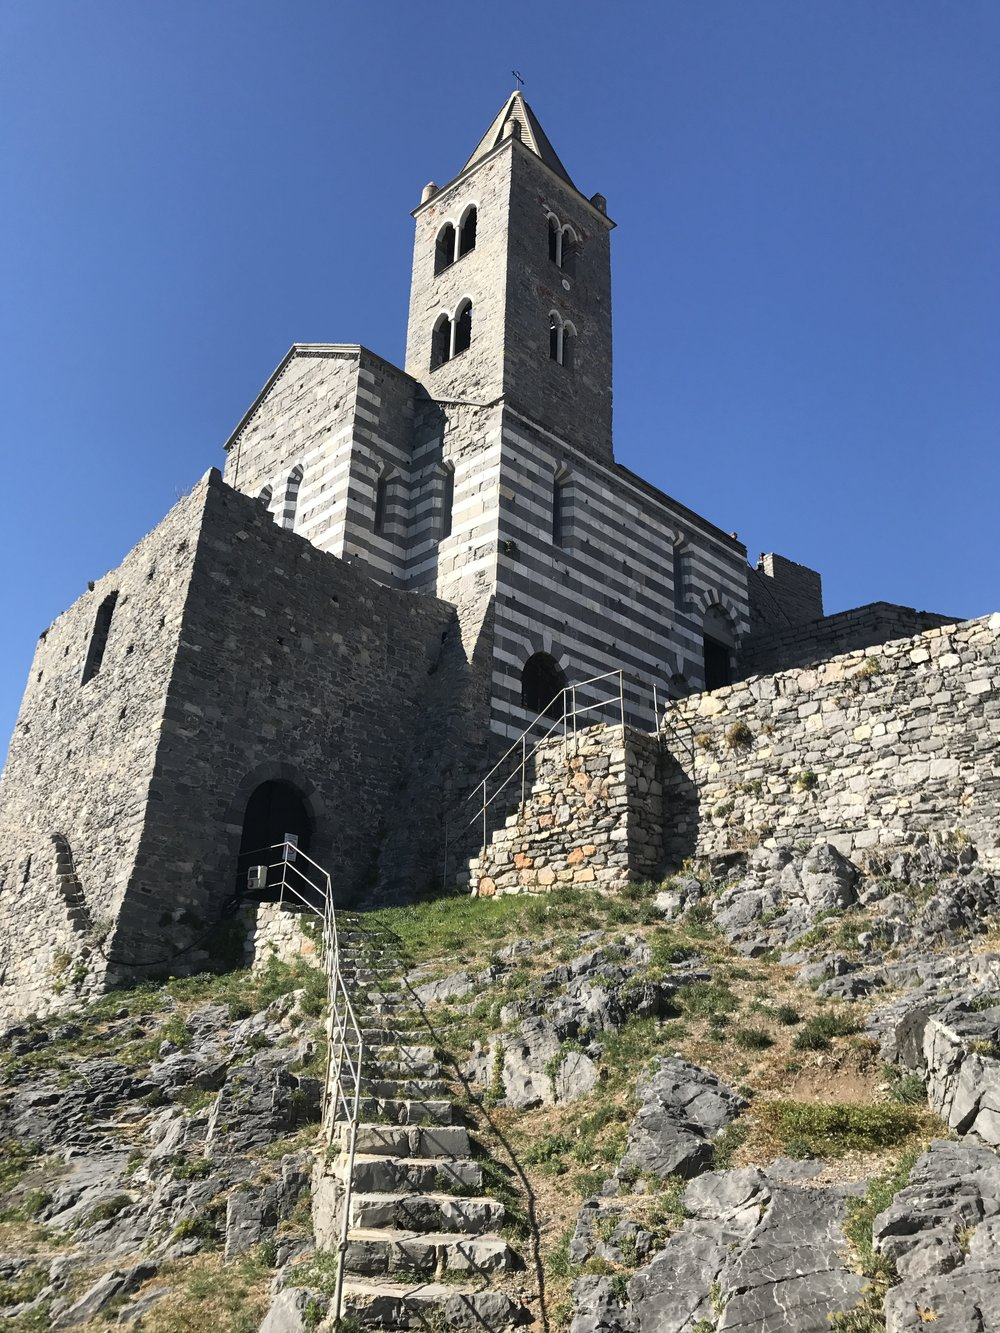 The Doria Castle